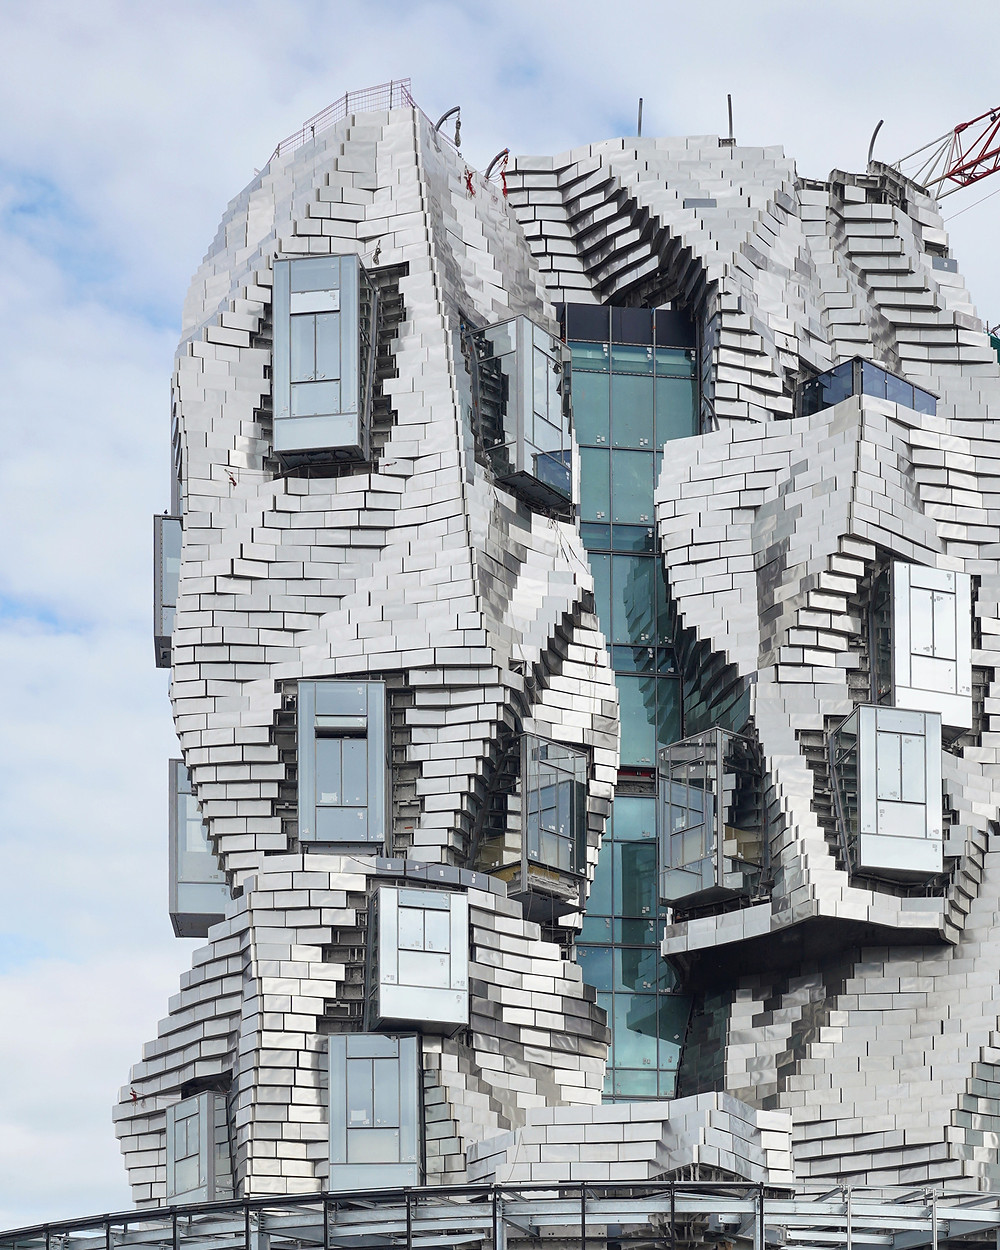 Luma Arles, a twisting tower of reflective aluminum in Arles France. Gehry's design is supposed to mimic the craggy rock formation outside the city that entranced Van Gogh.